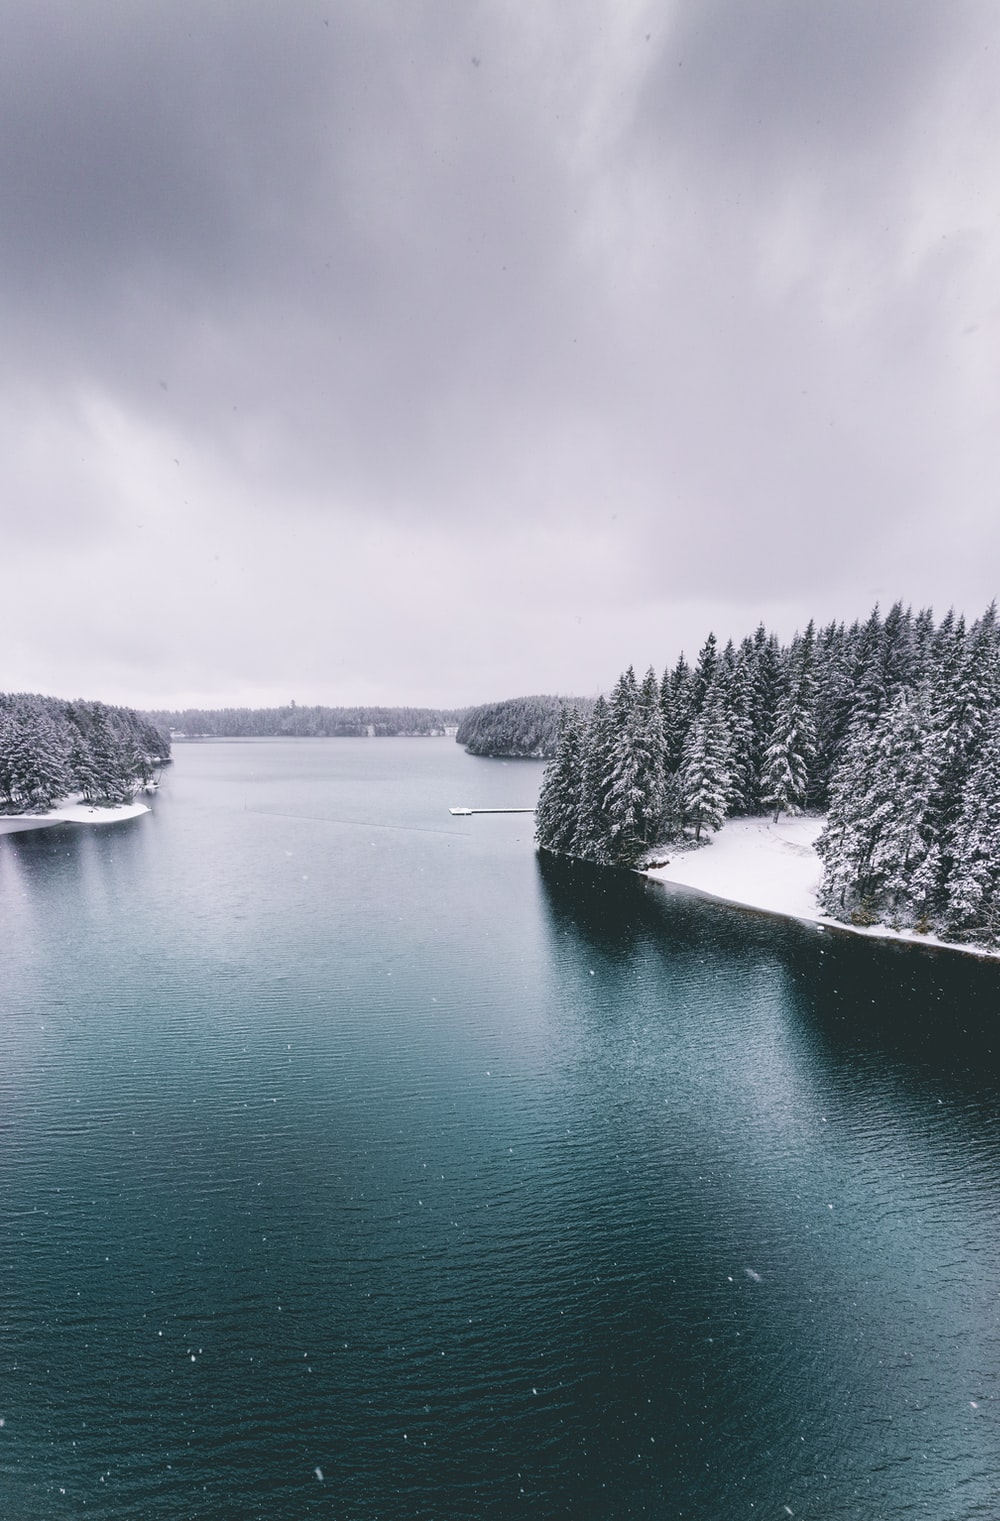 grayscale photo of lake surrounded by trees